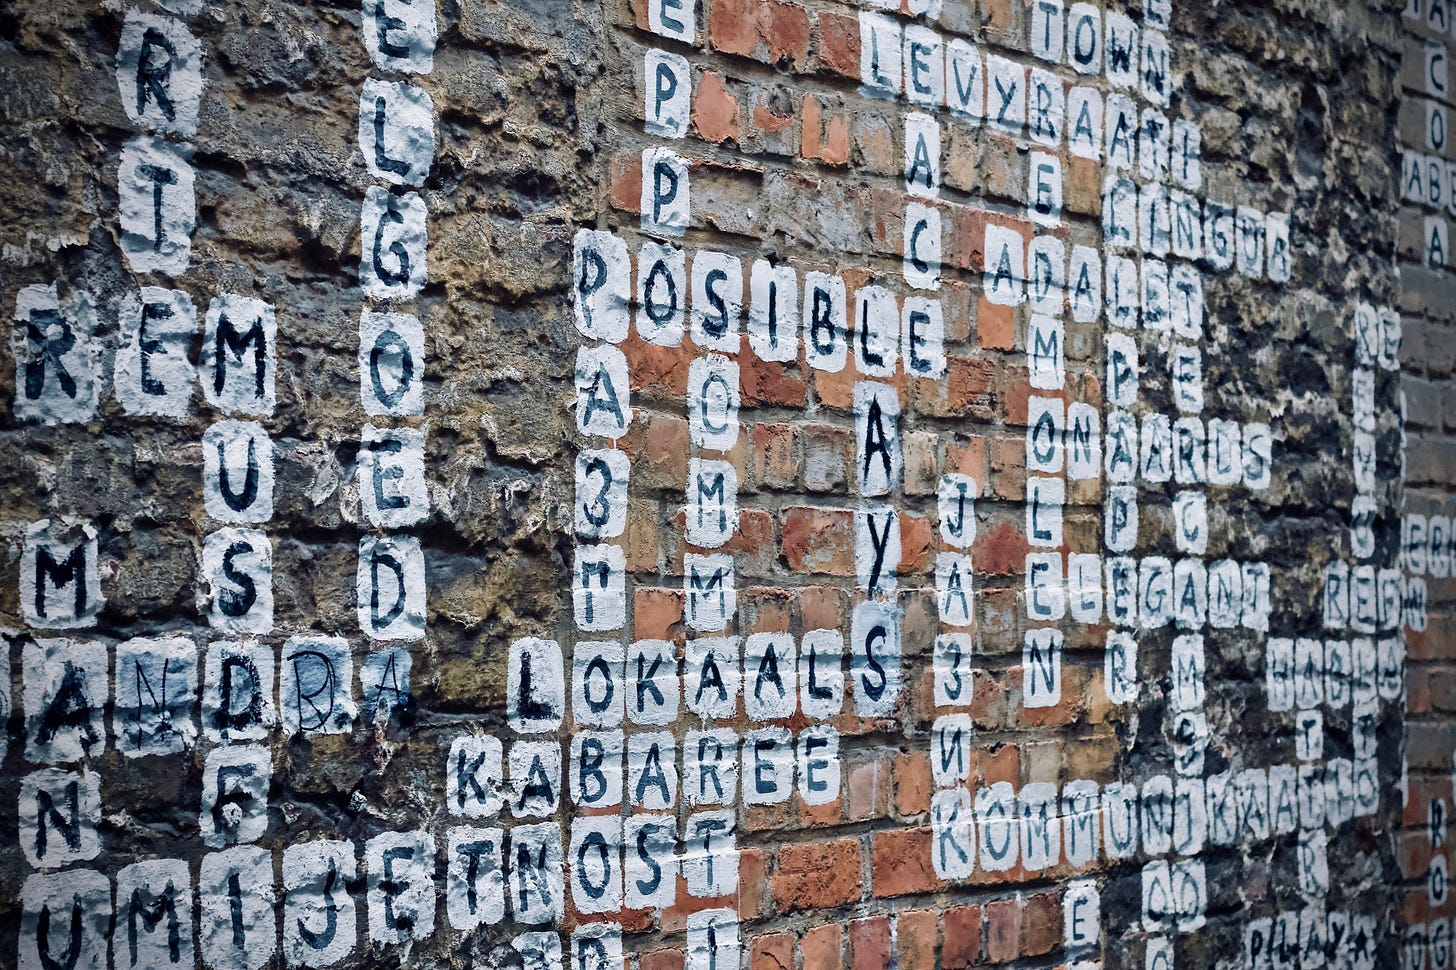 """Image of scrabble painted on a wall for article titled """"words just don't cut it"""" by Larry G. Maguire"""